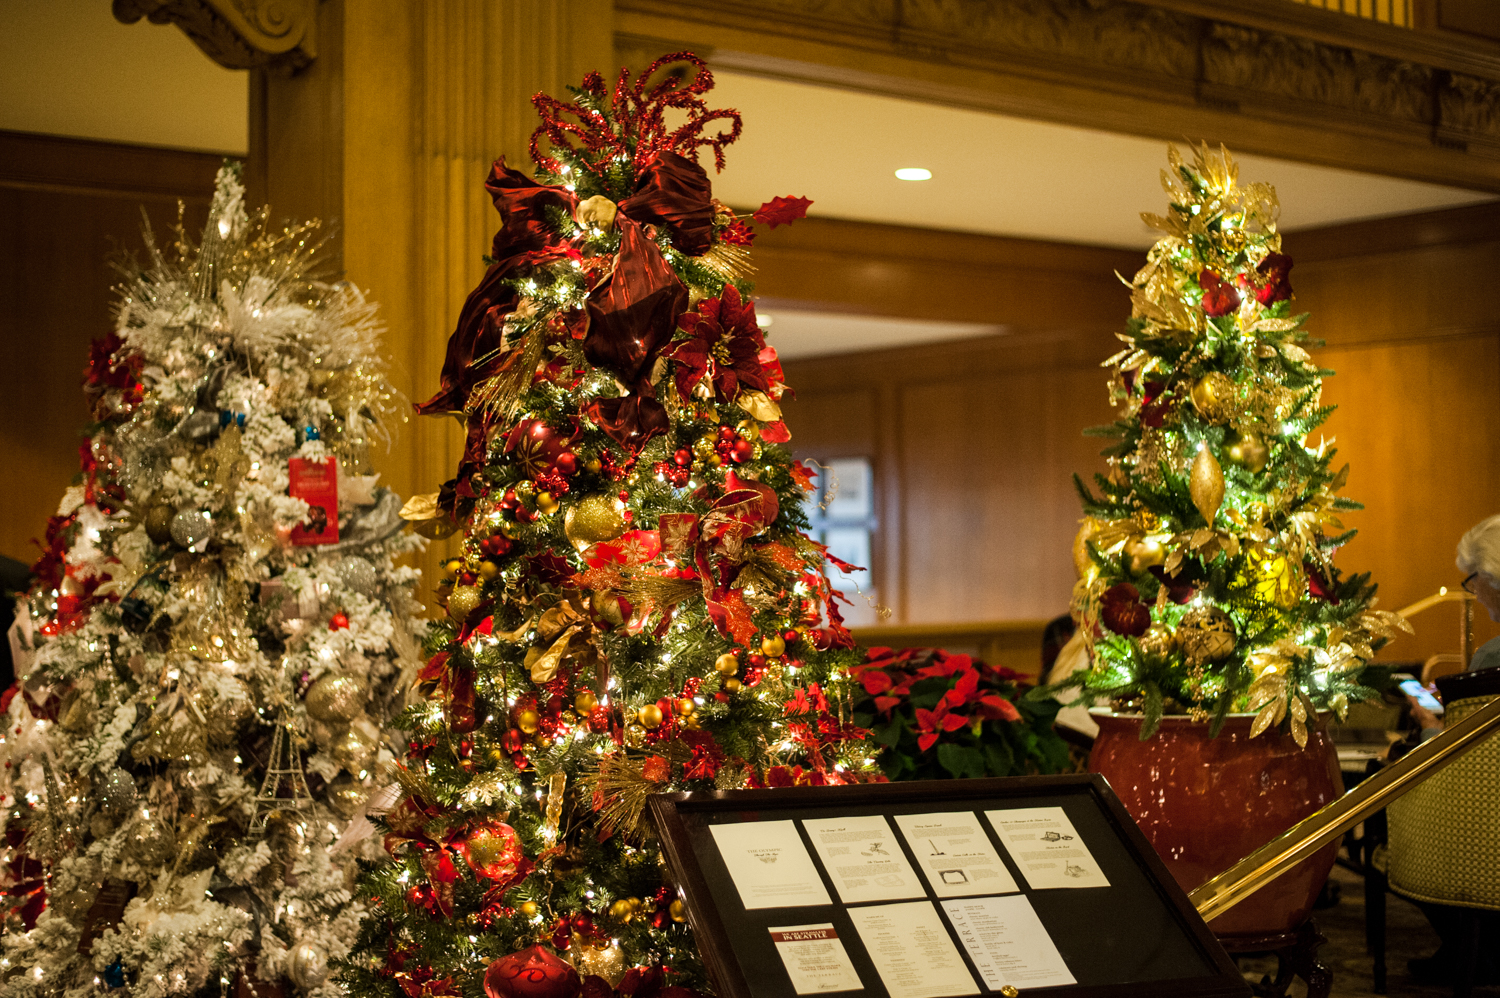 <p>Located in the Fairmont Olympic Hotel in downtown Seattle, the annual Festival of Trees has officially kicked off this holiday season. Patrons can view the trees on display through December 2, 2018 - or bid on them for their home/office. Proceeds benefit Seattle Children's Hospital. (Image: Elizabeth Crook / Seattle Refined)</p>